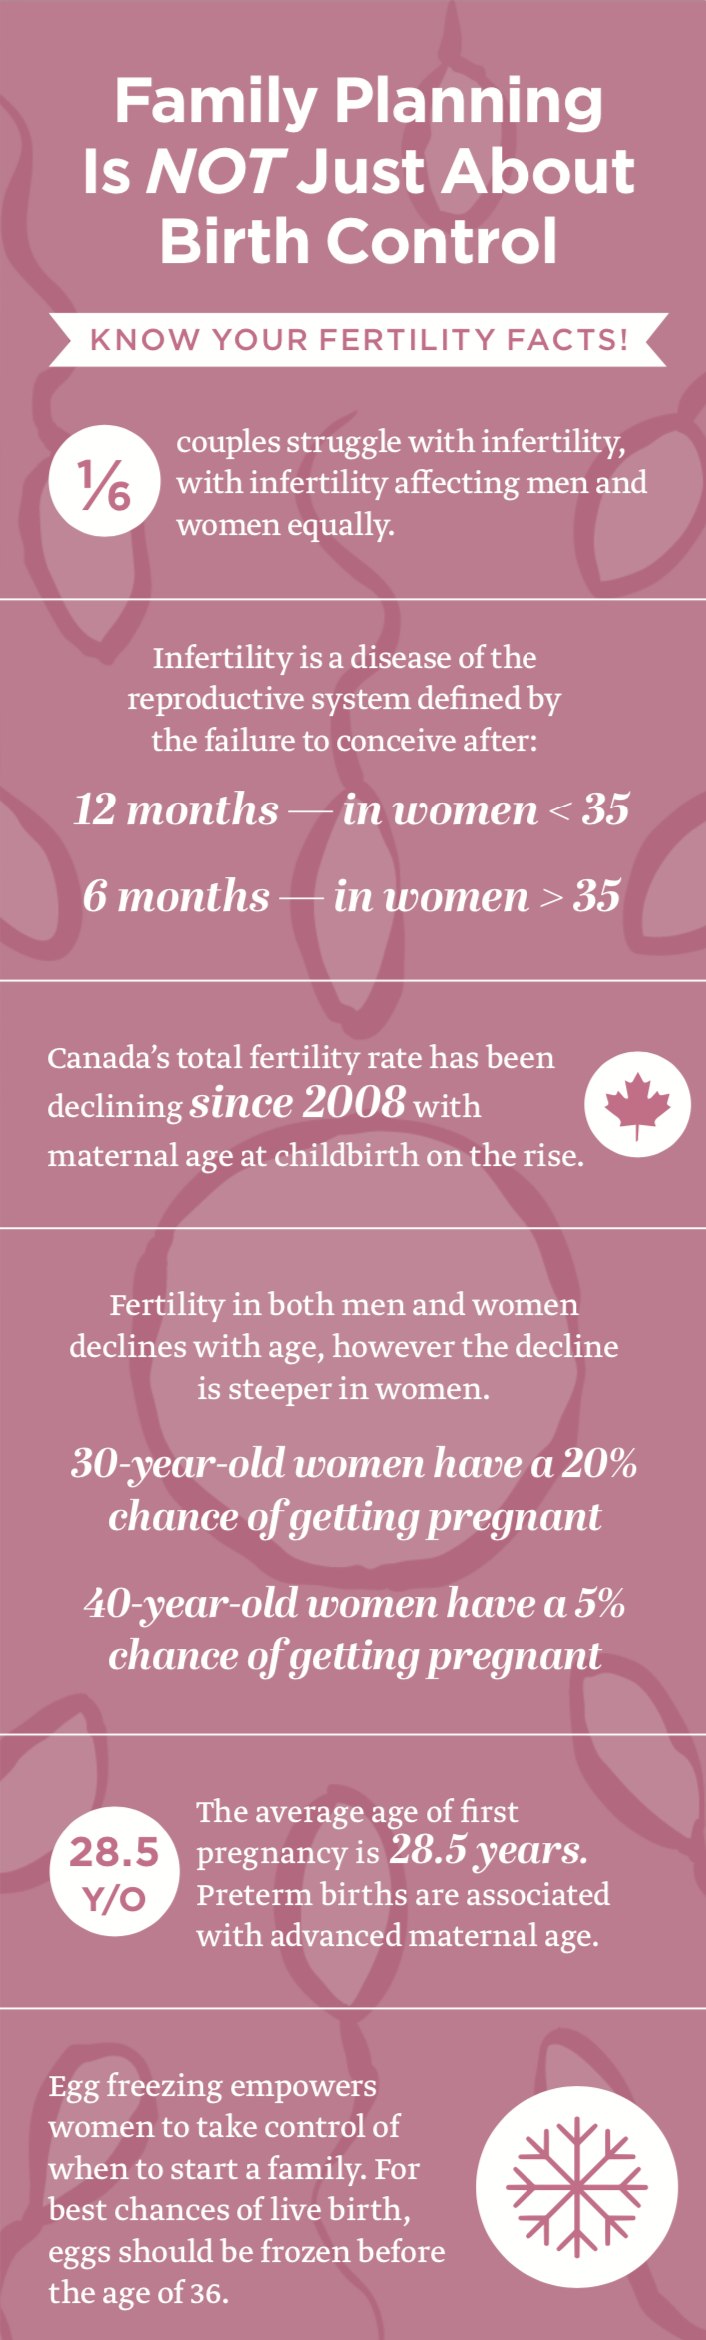 Infographic: Family planning is not just about birth control